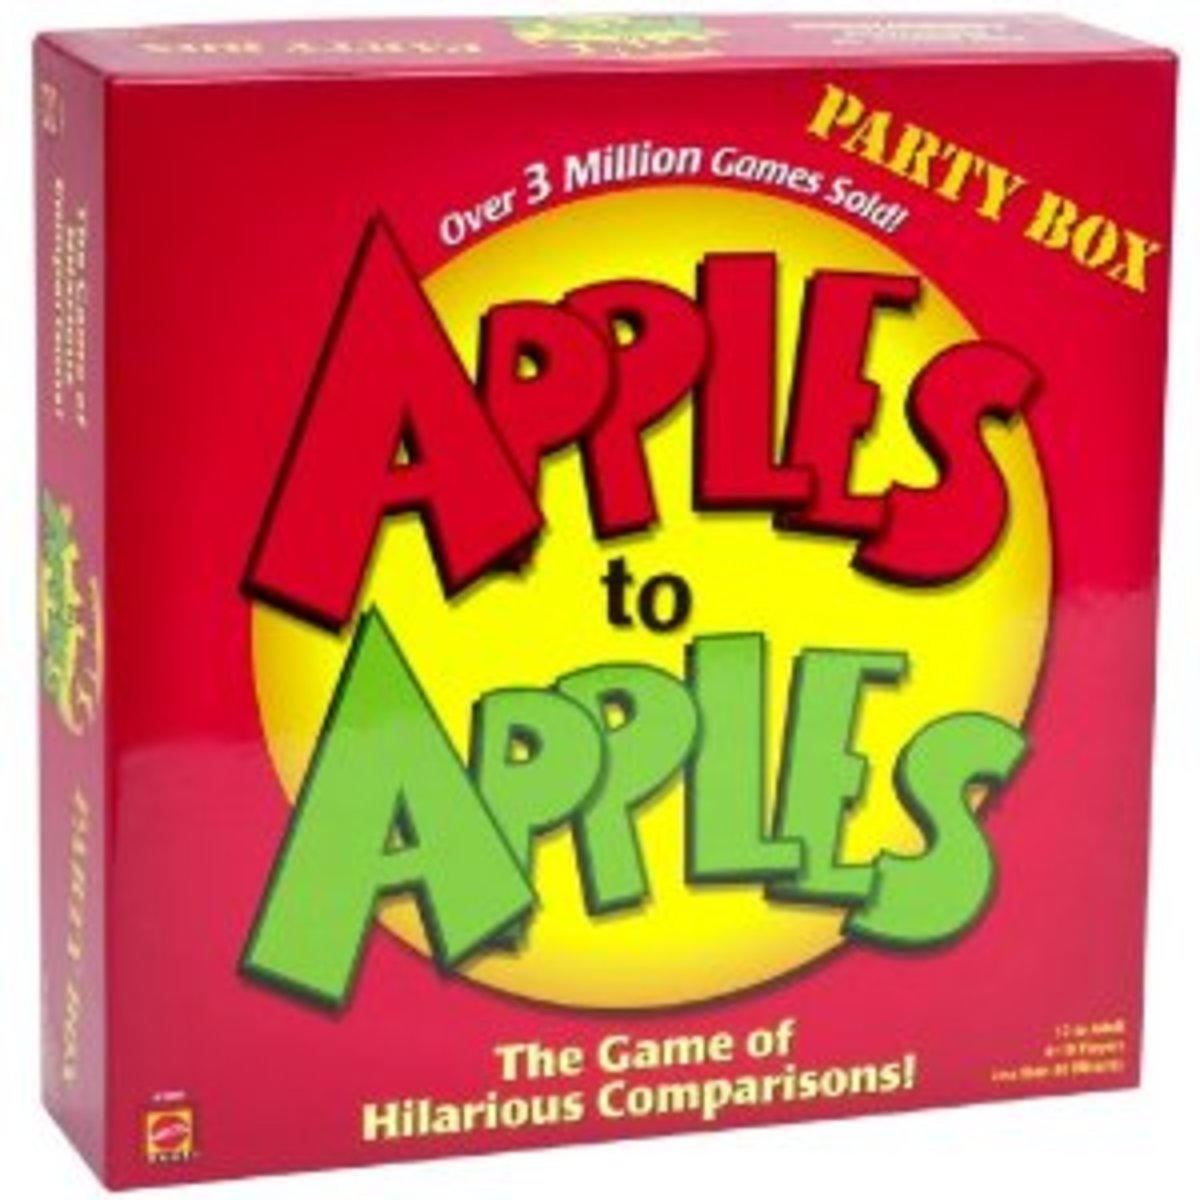 A great game for conversation and crazy laughter!